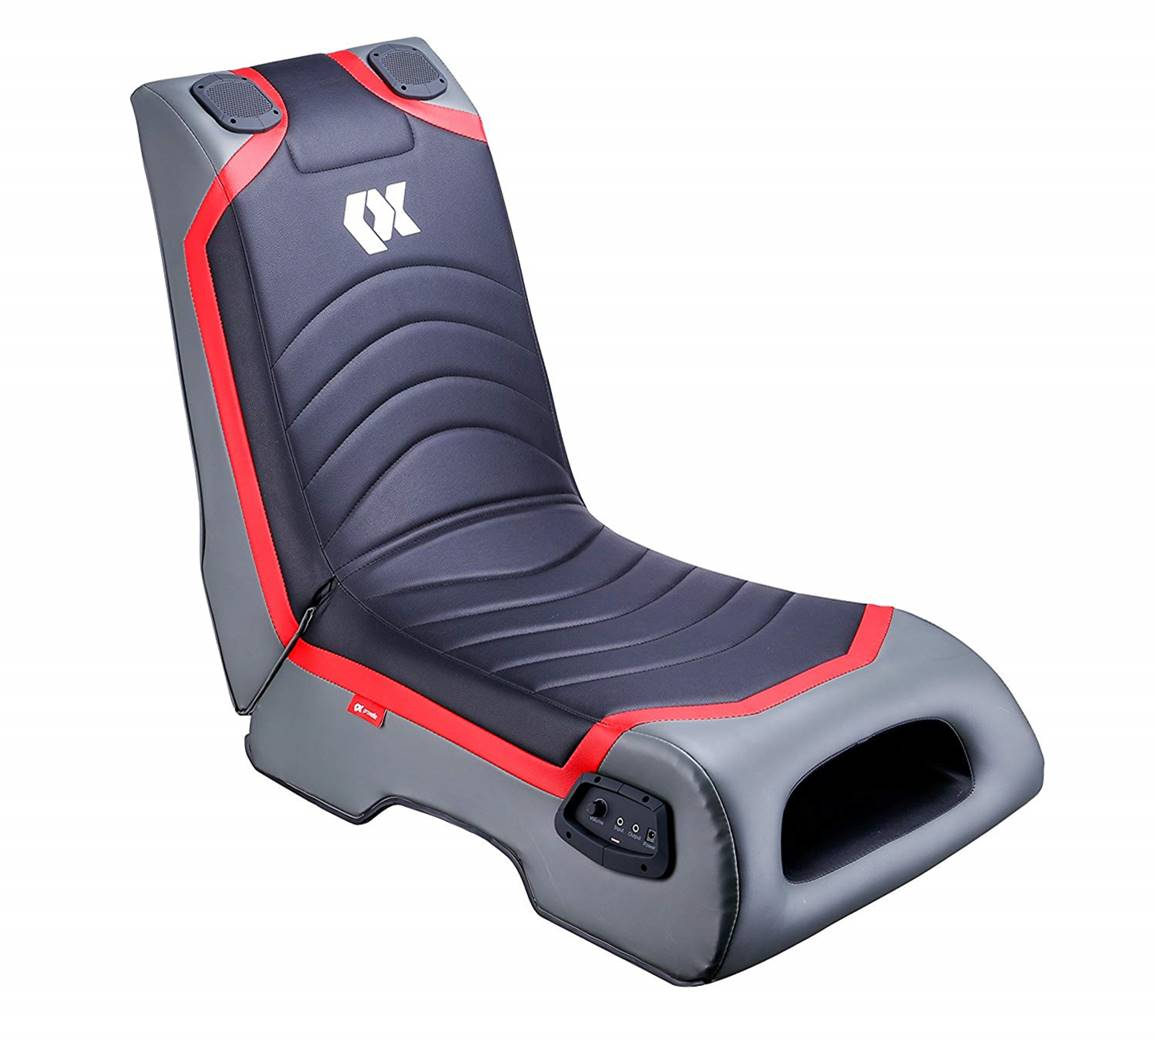 Proxelle Gaming Chair with Speakers